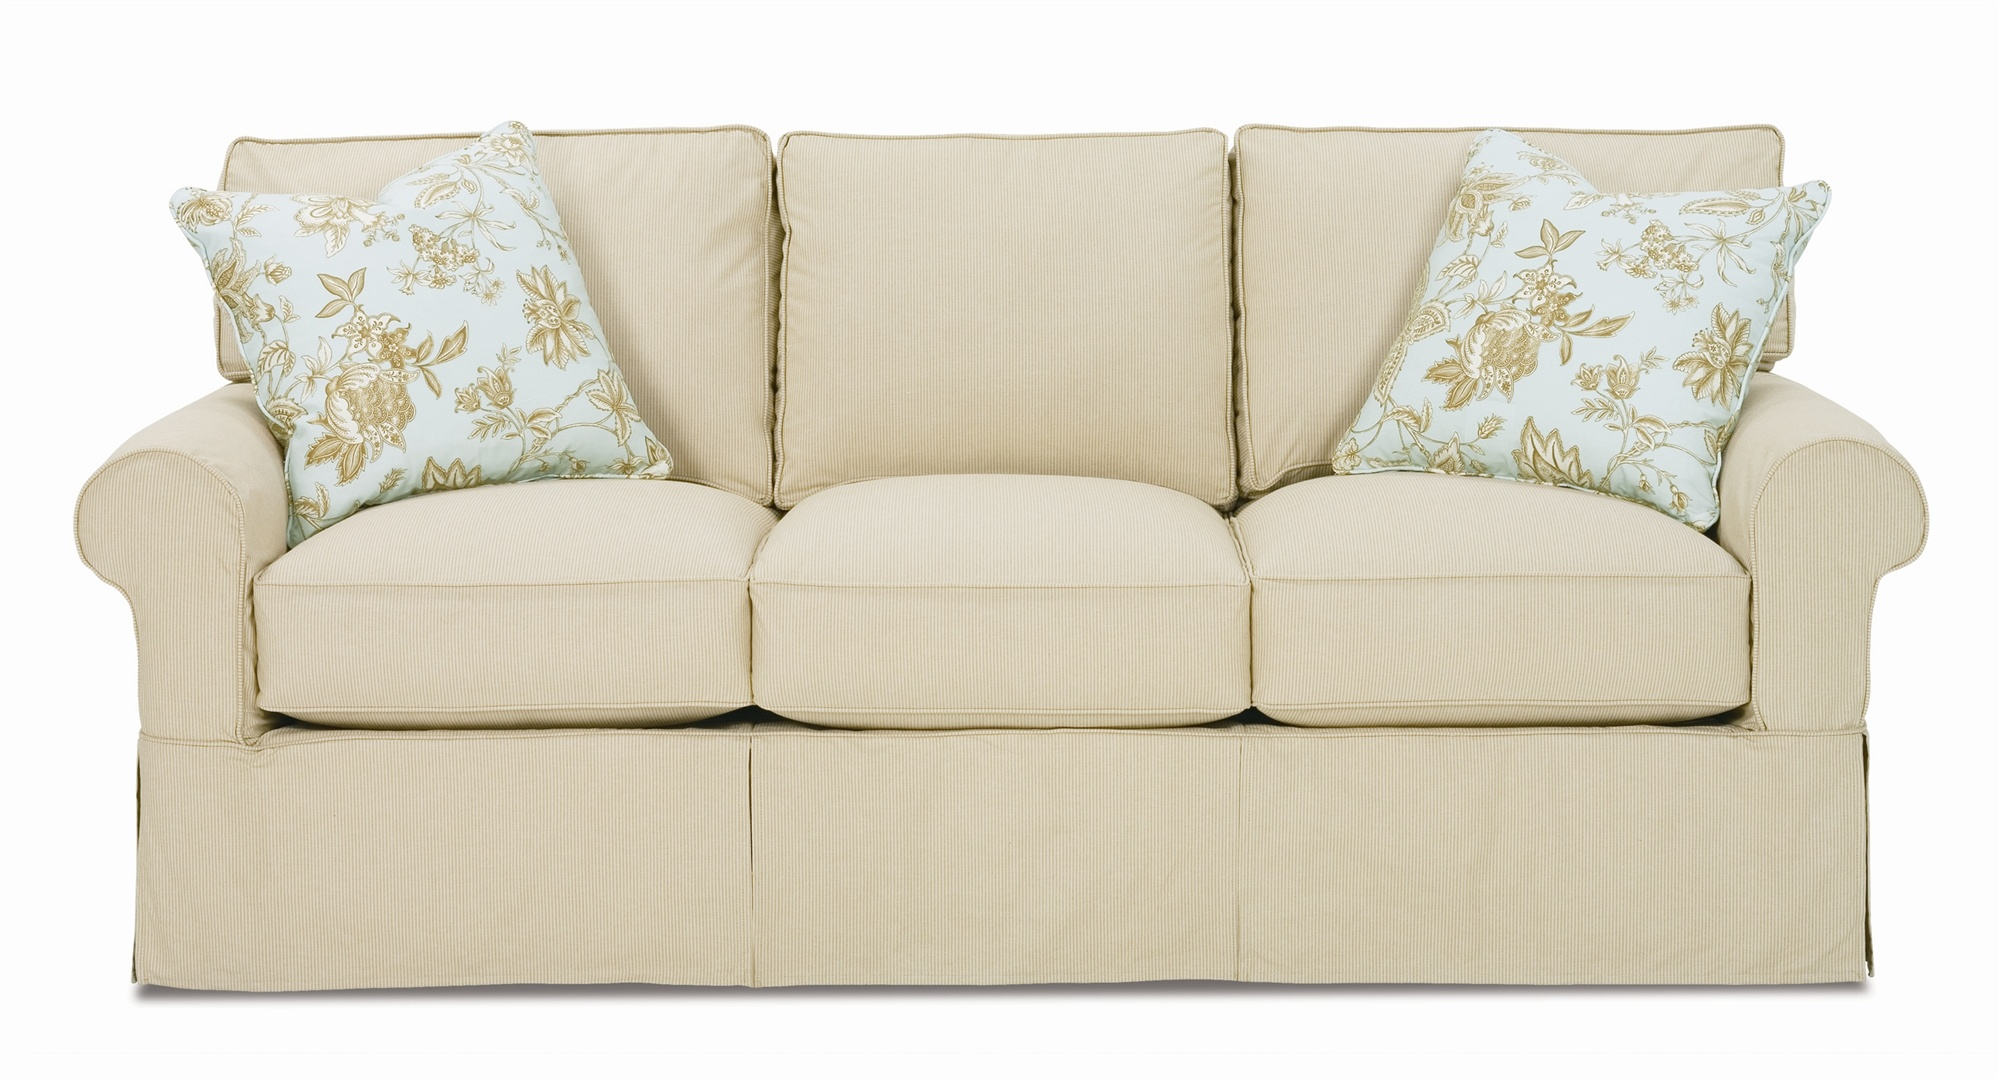 Quality Interiors | Sofa Slipcover | Chair Slipcovers